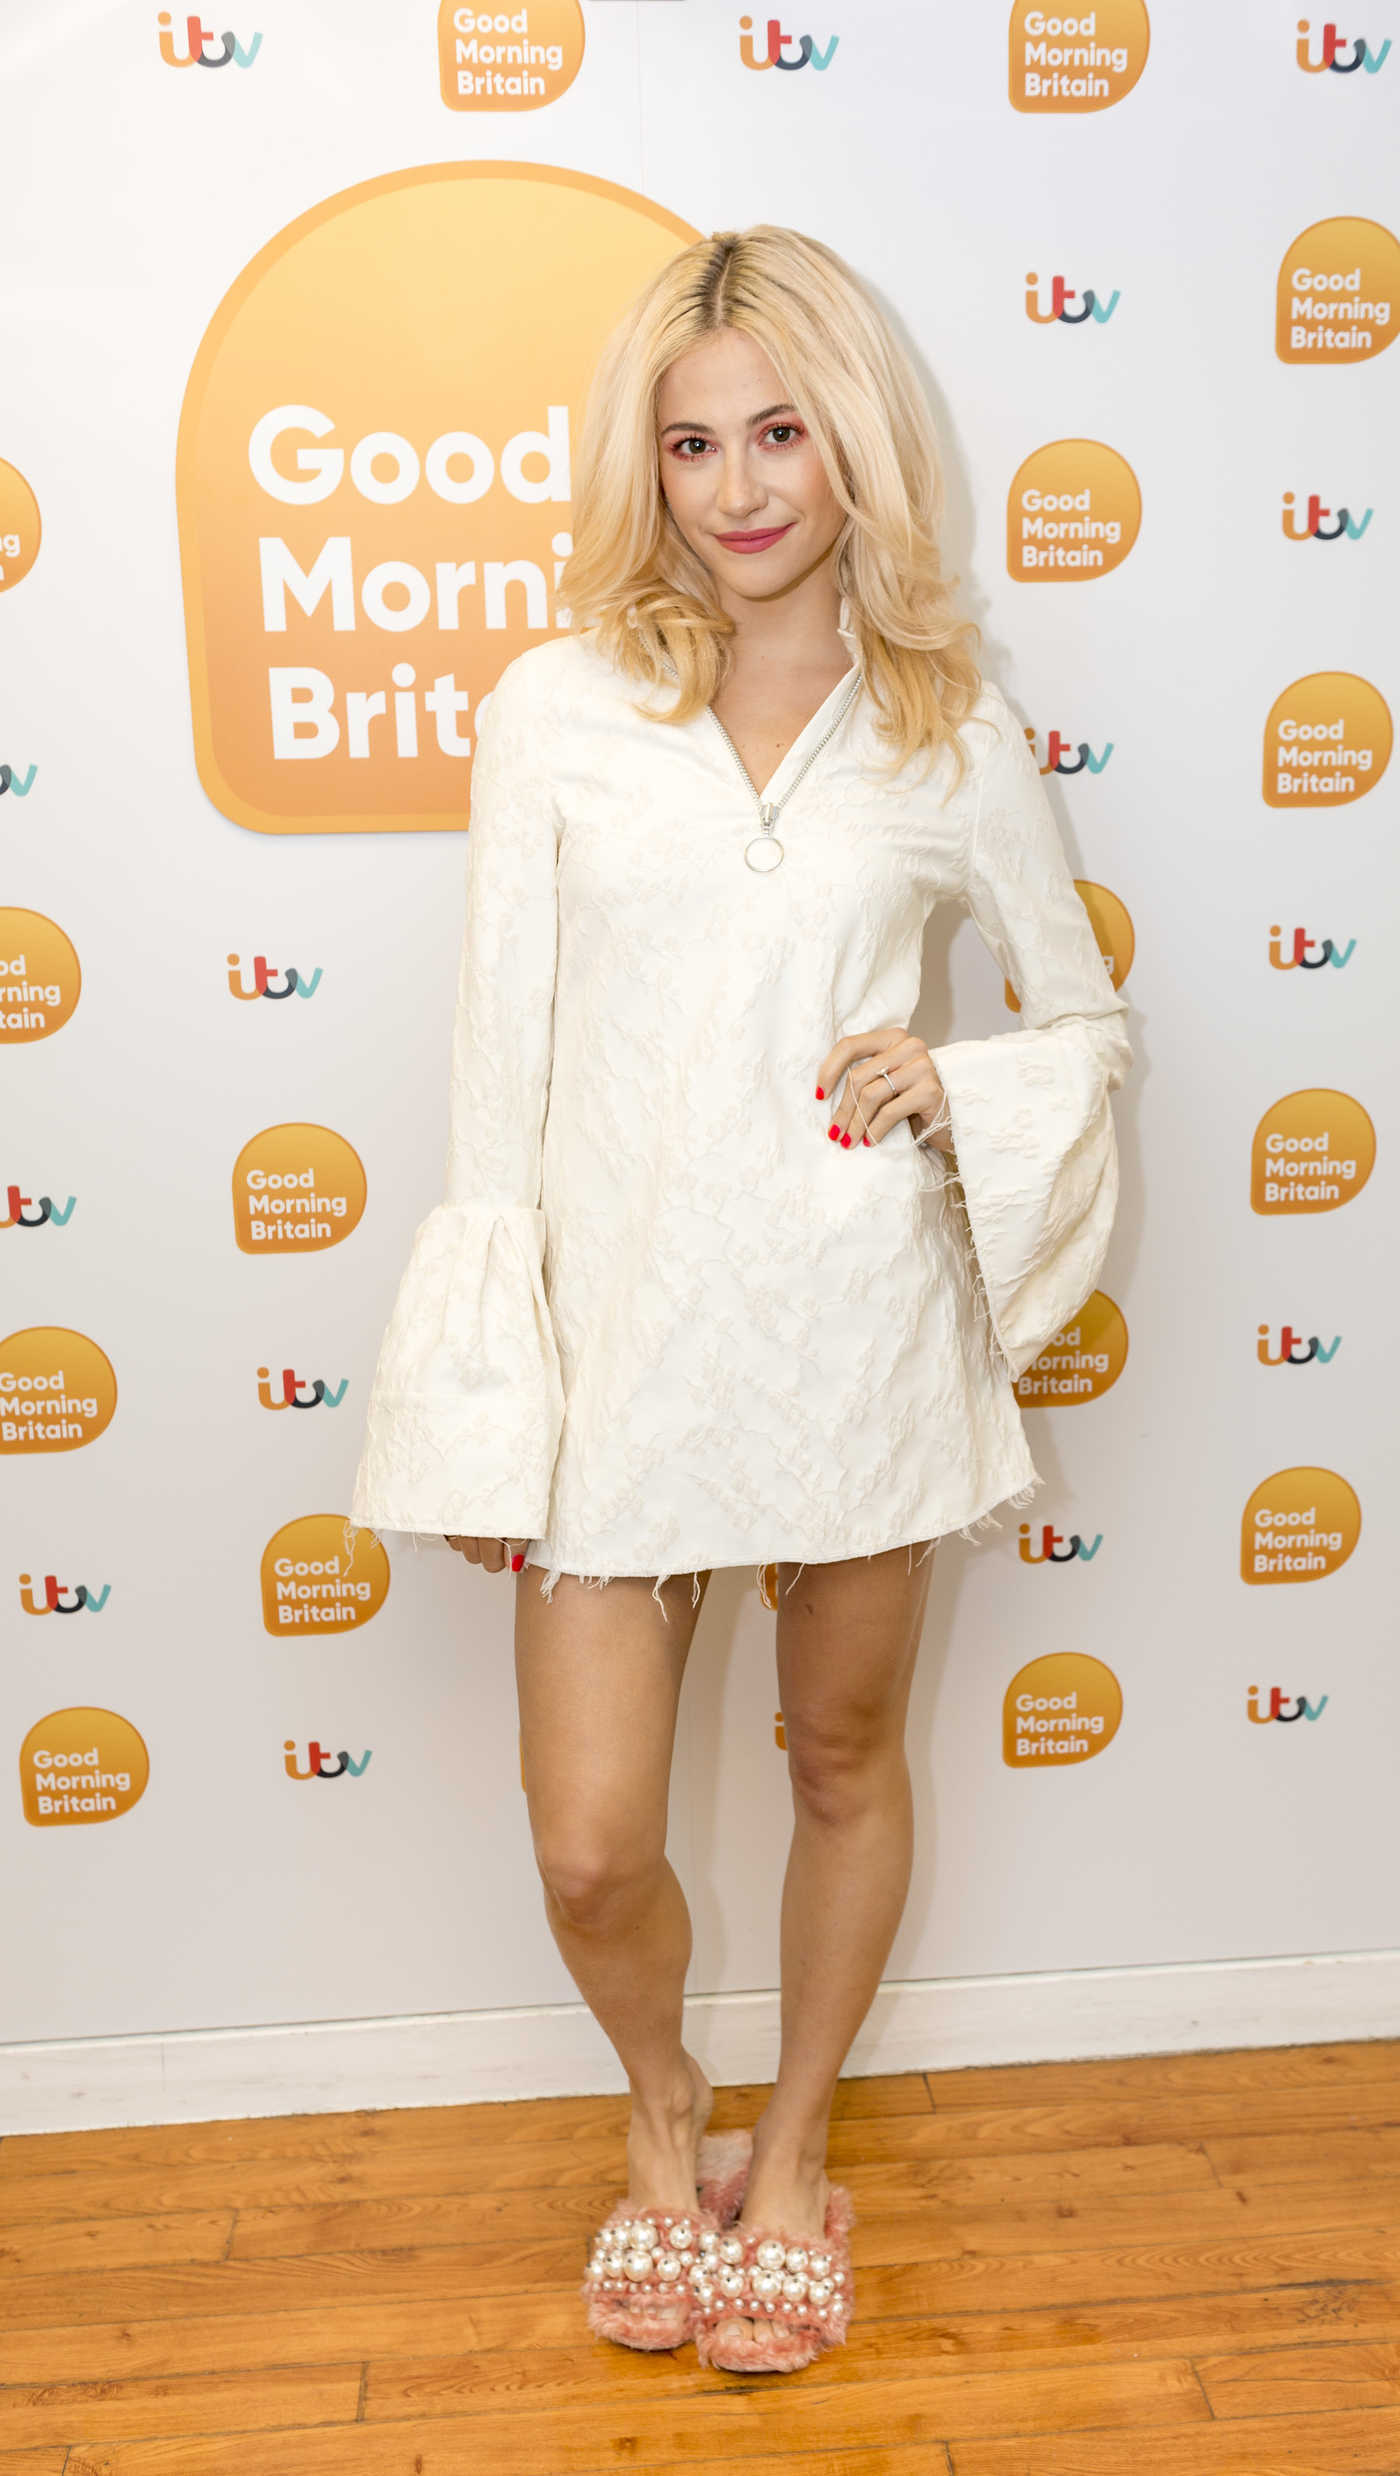 Pixie Lott at the Good Morning Britain TV Show in London 06/23/2017